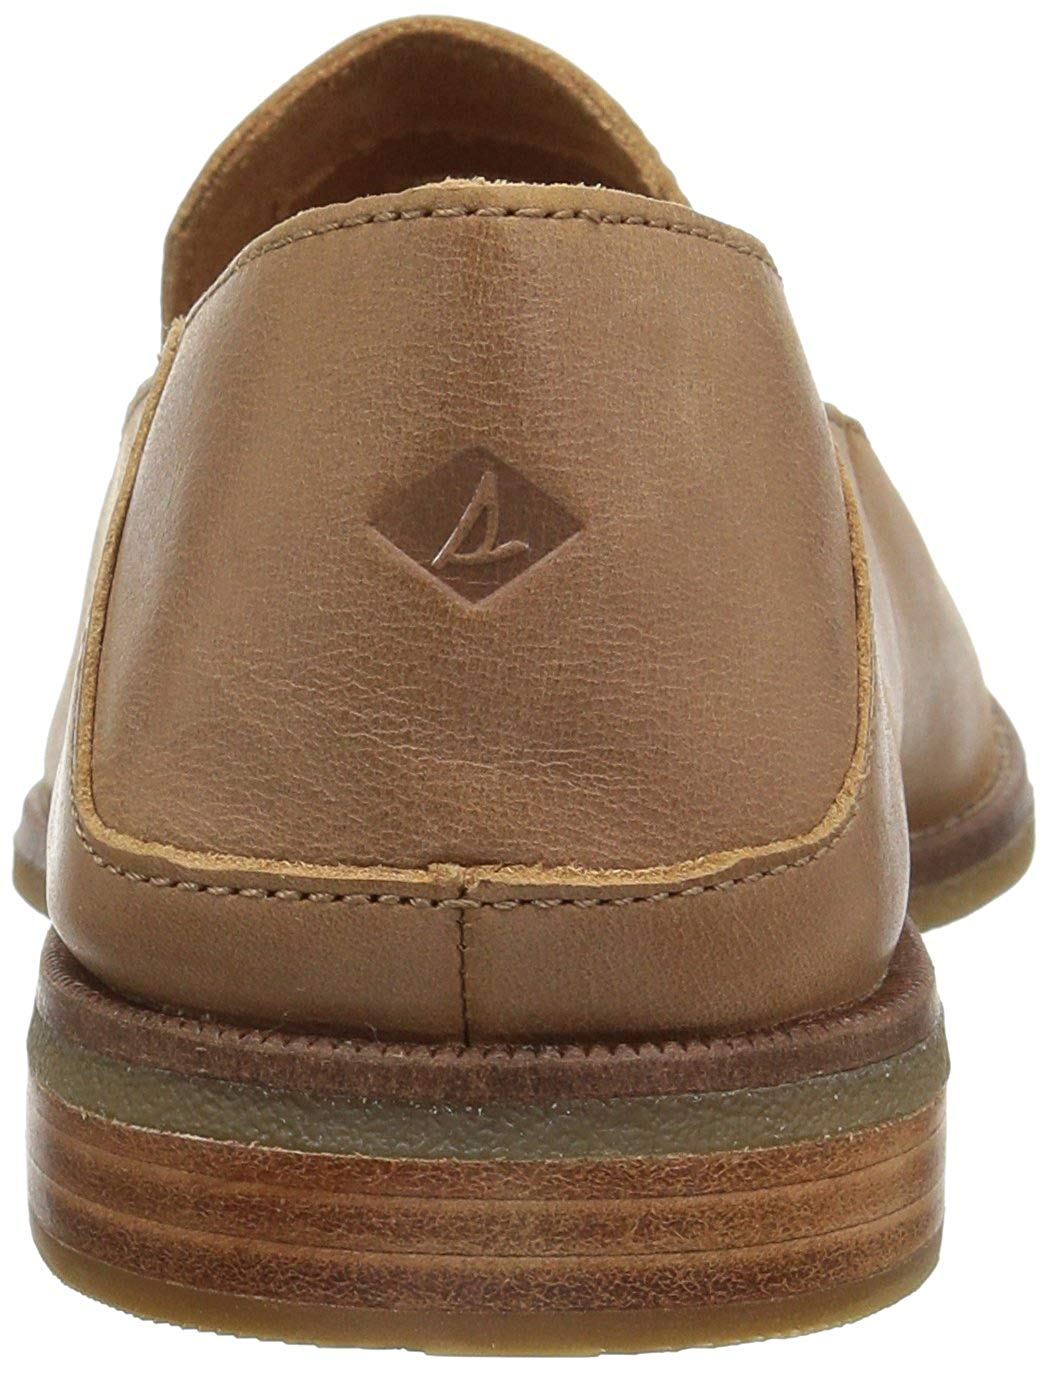 22959a5f319 Sperry - Sperry Women s Seaport Levy Loafer - Walmart.com